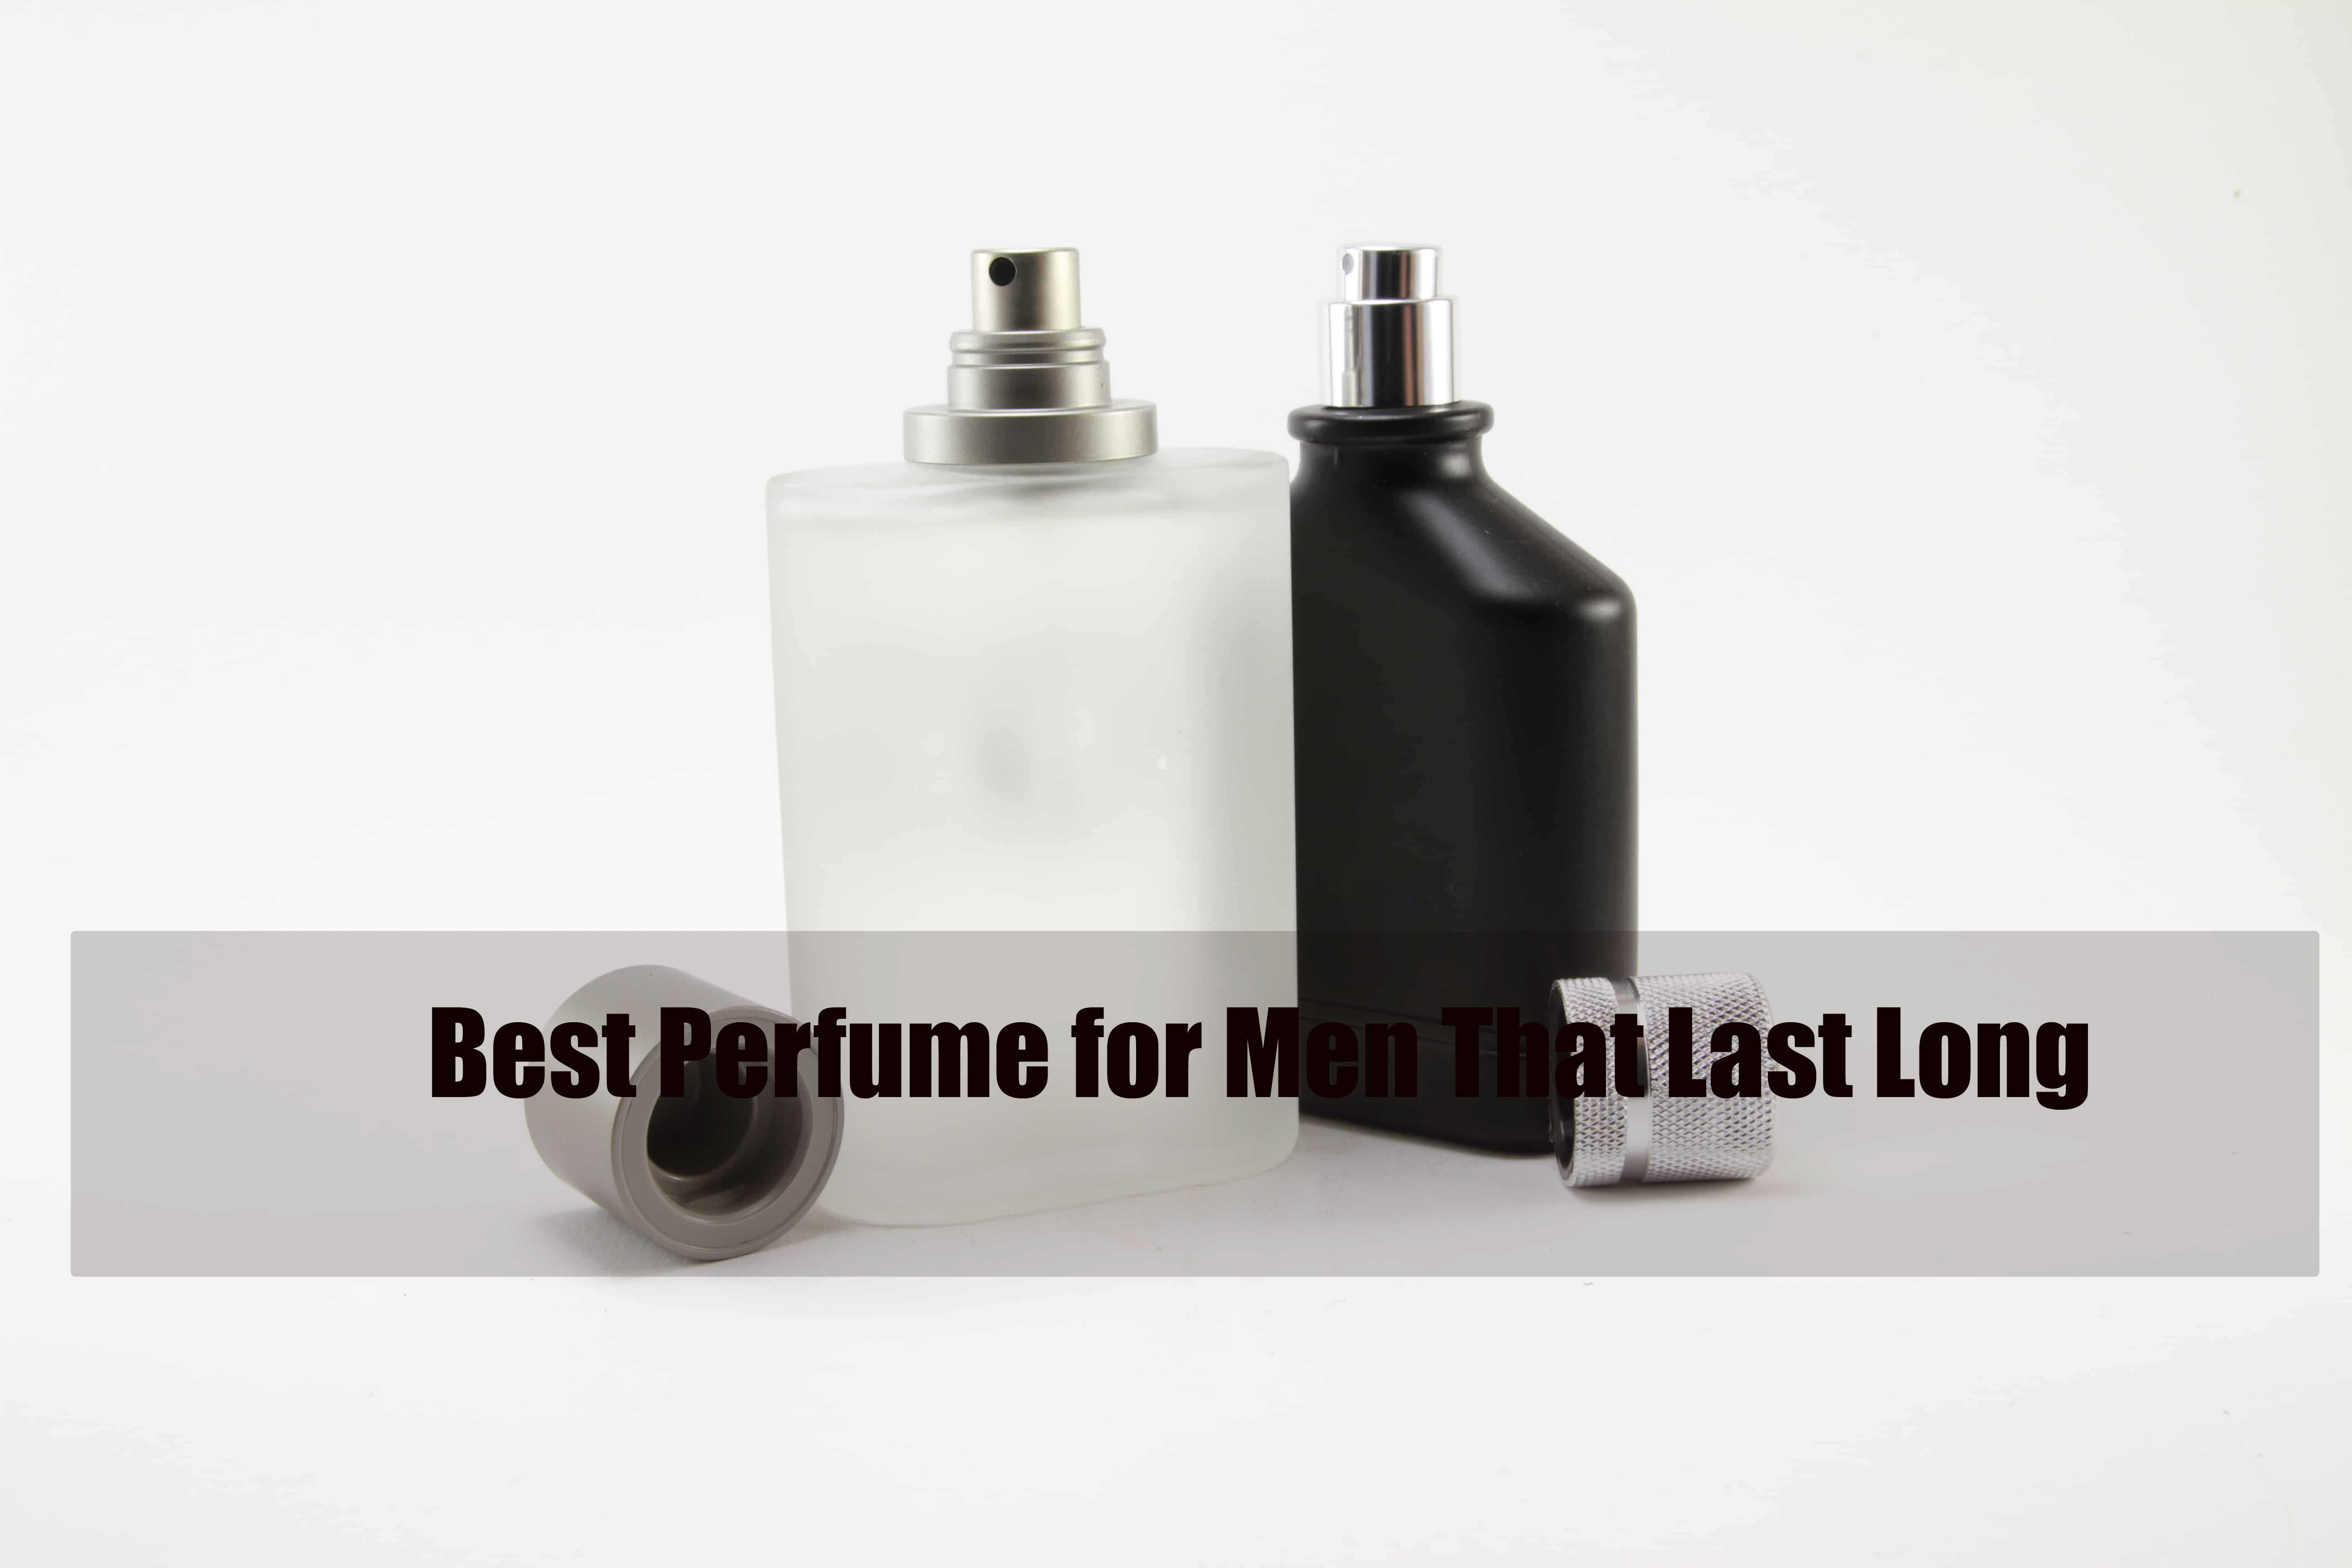 10 Best Perfume For Men That Last Long 2019 Detailed And Explained